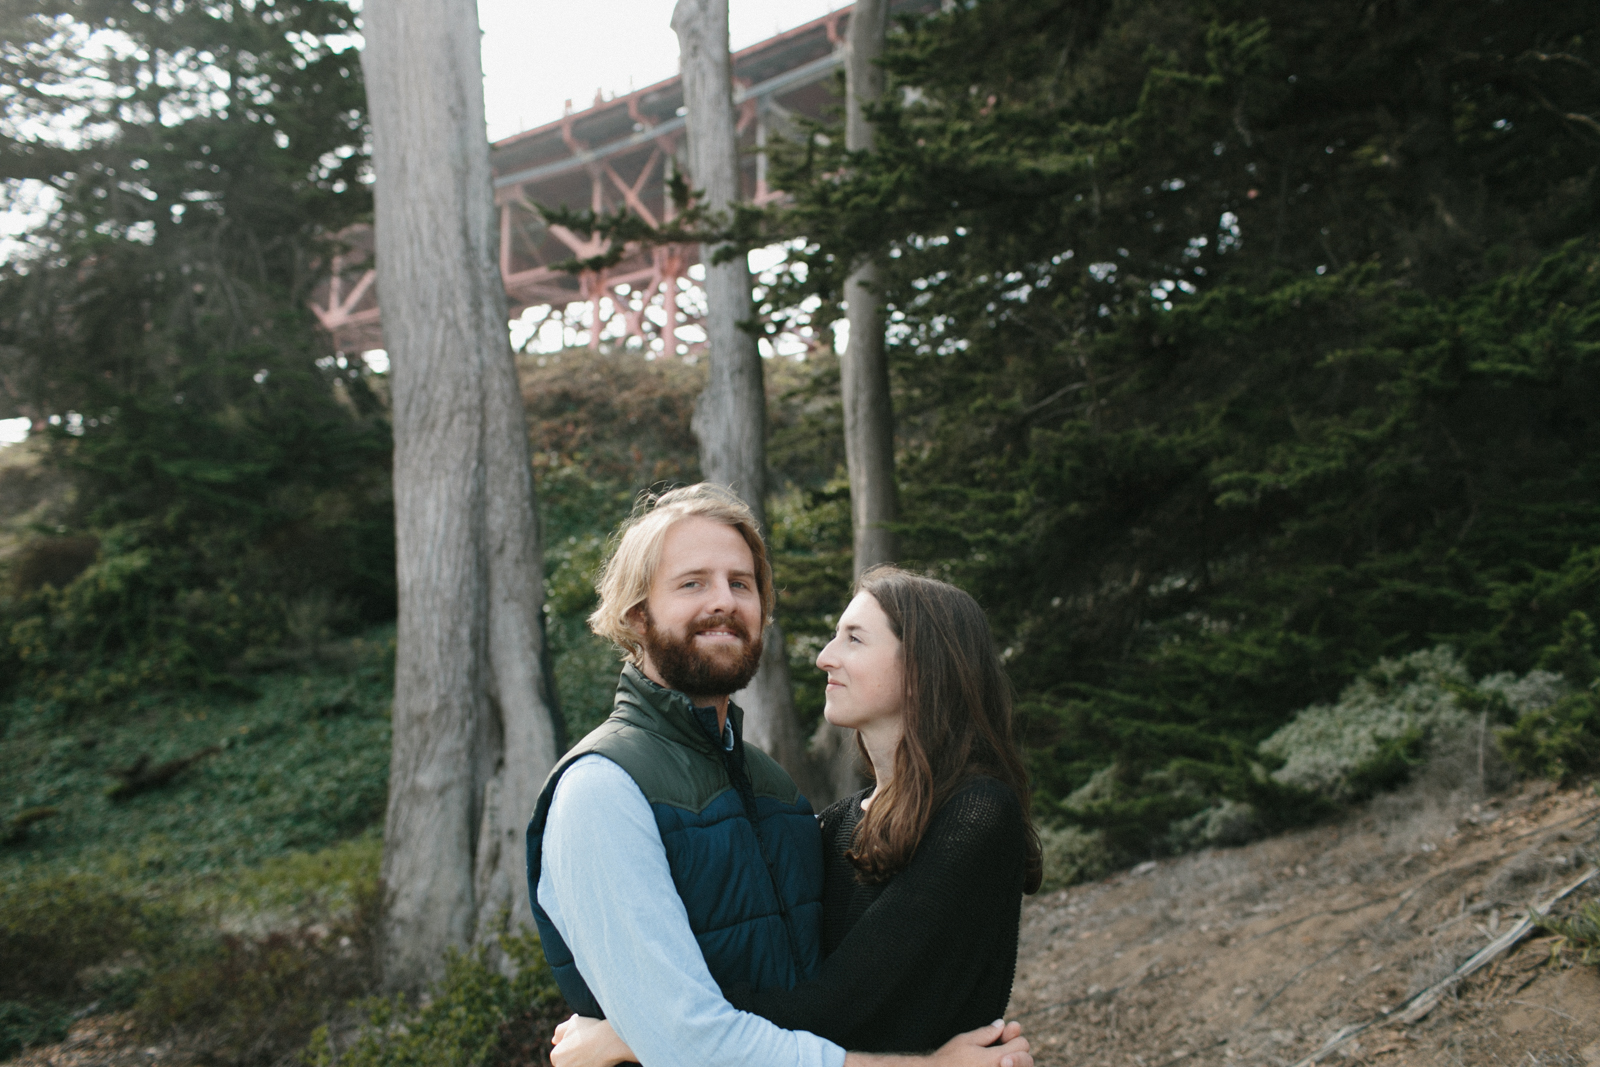 San Francisco Engagement Photography by Bay Area Wedding Photographer Mae Stier-014.jpg